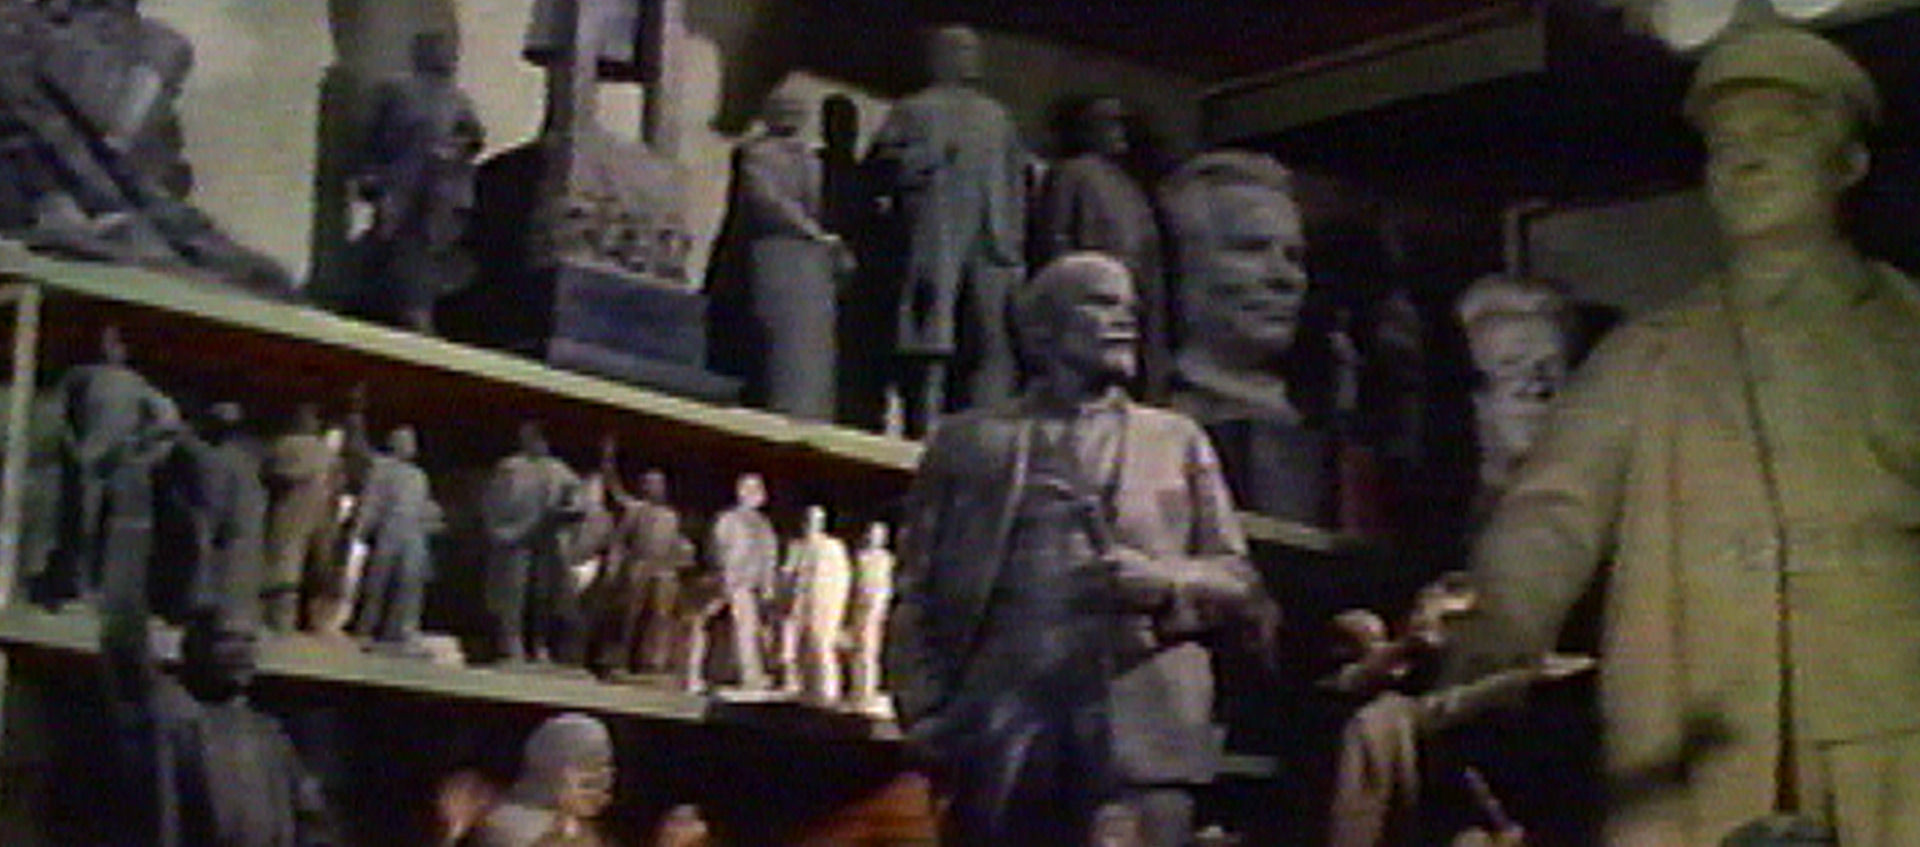 A warehouse full of old Soviet monuments, with a statue of Lenin at the center of the shot